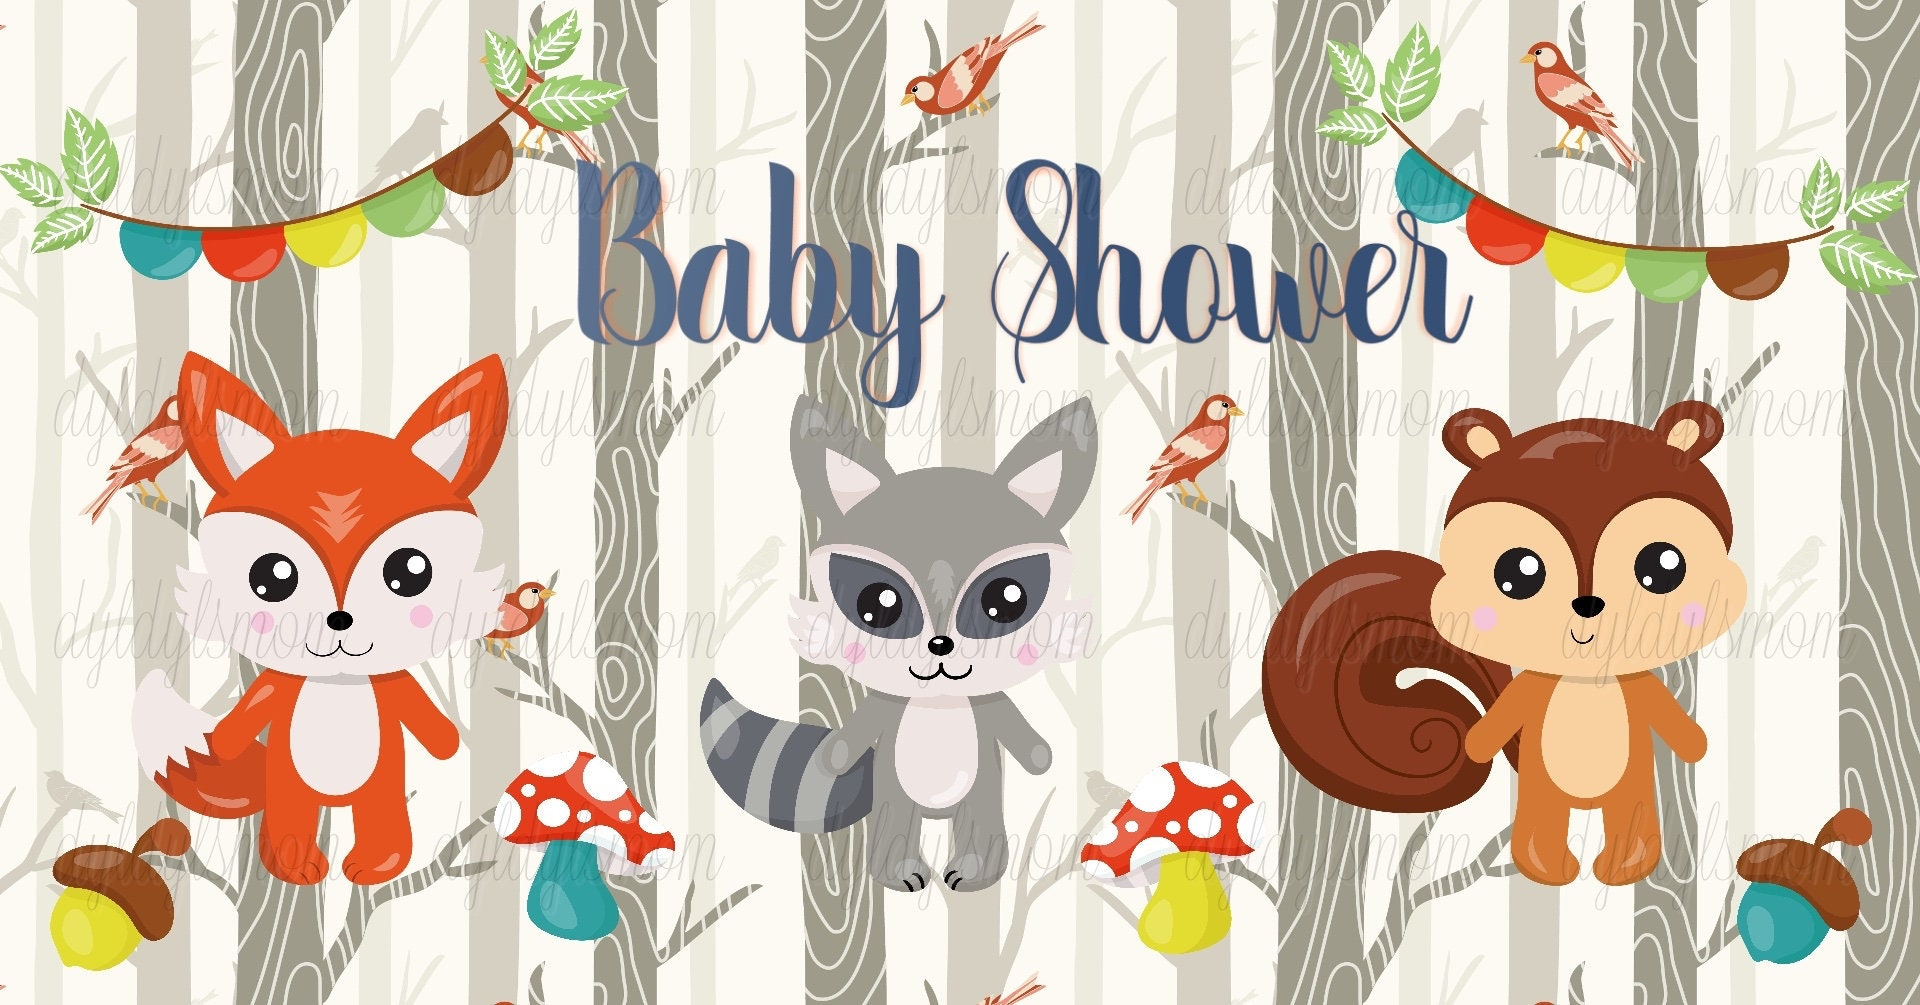 Woodland Creatures Baby Shower Facebook Event Cover Photo -9033